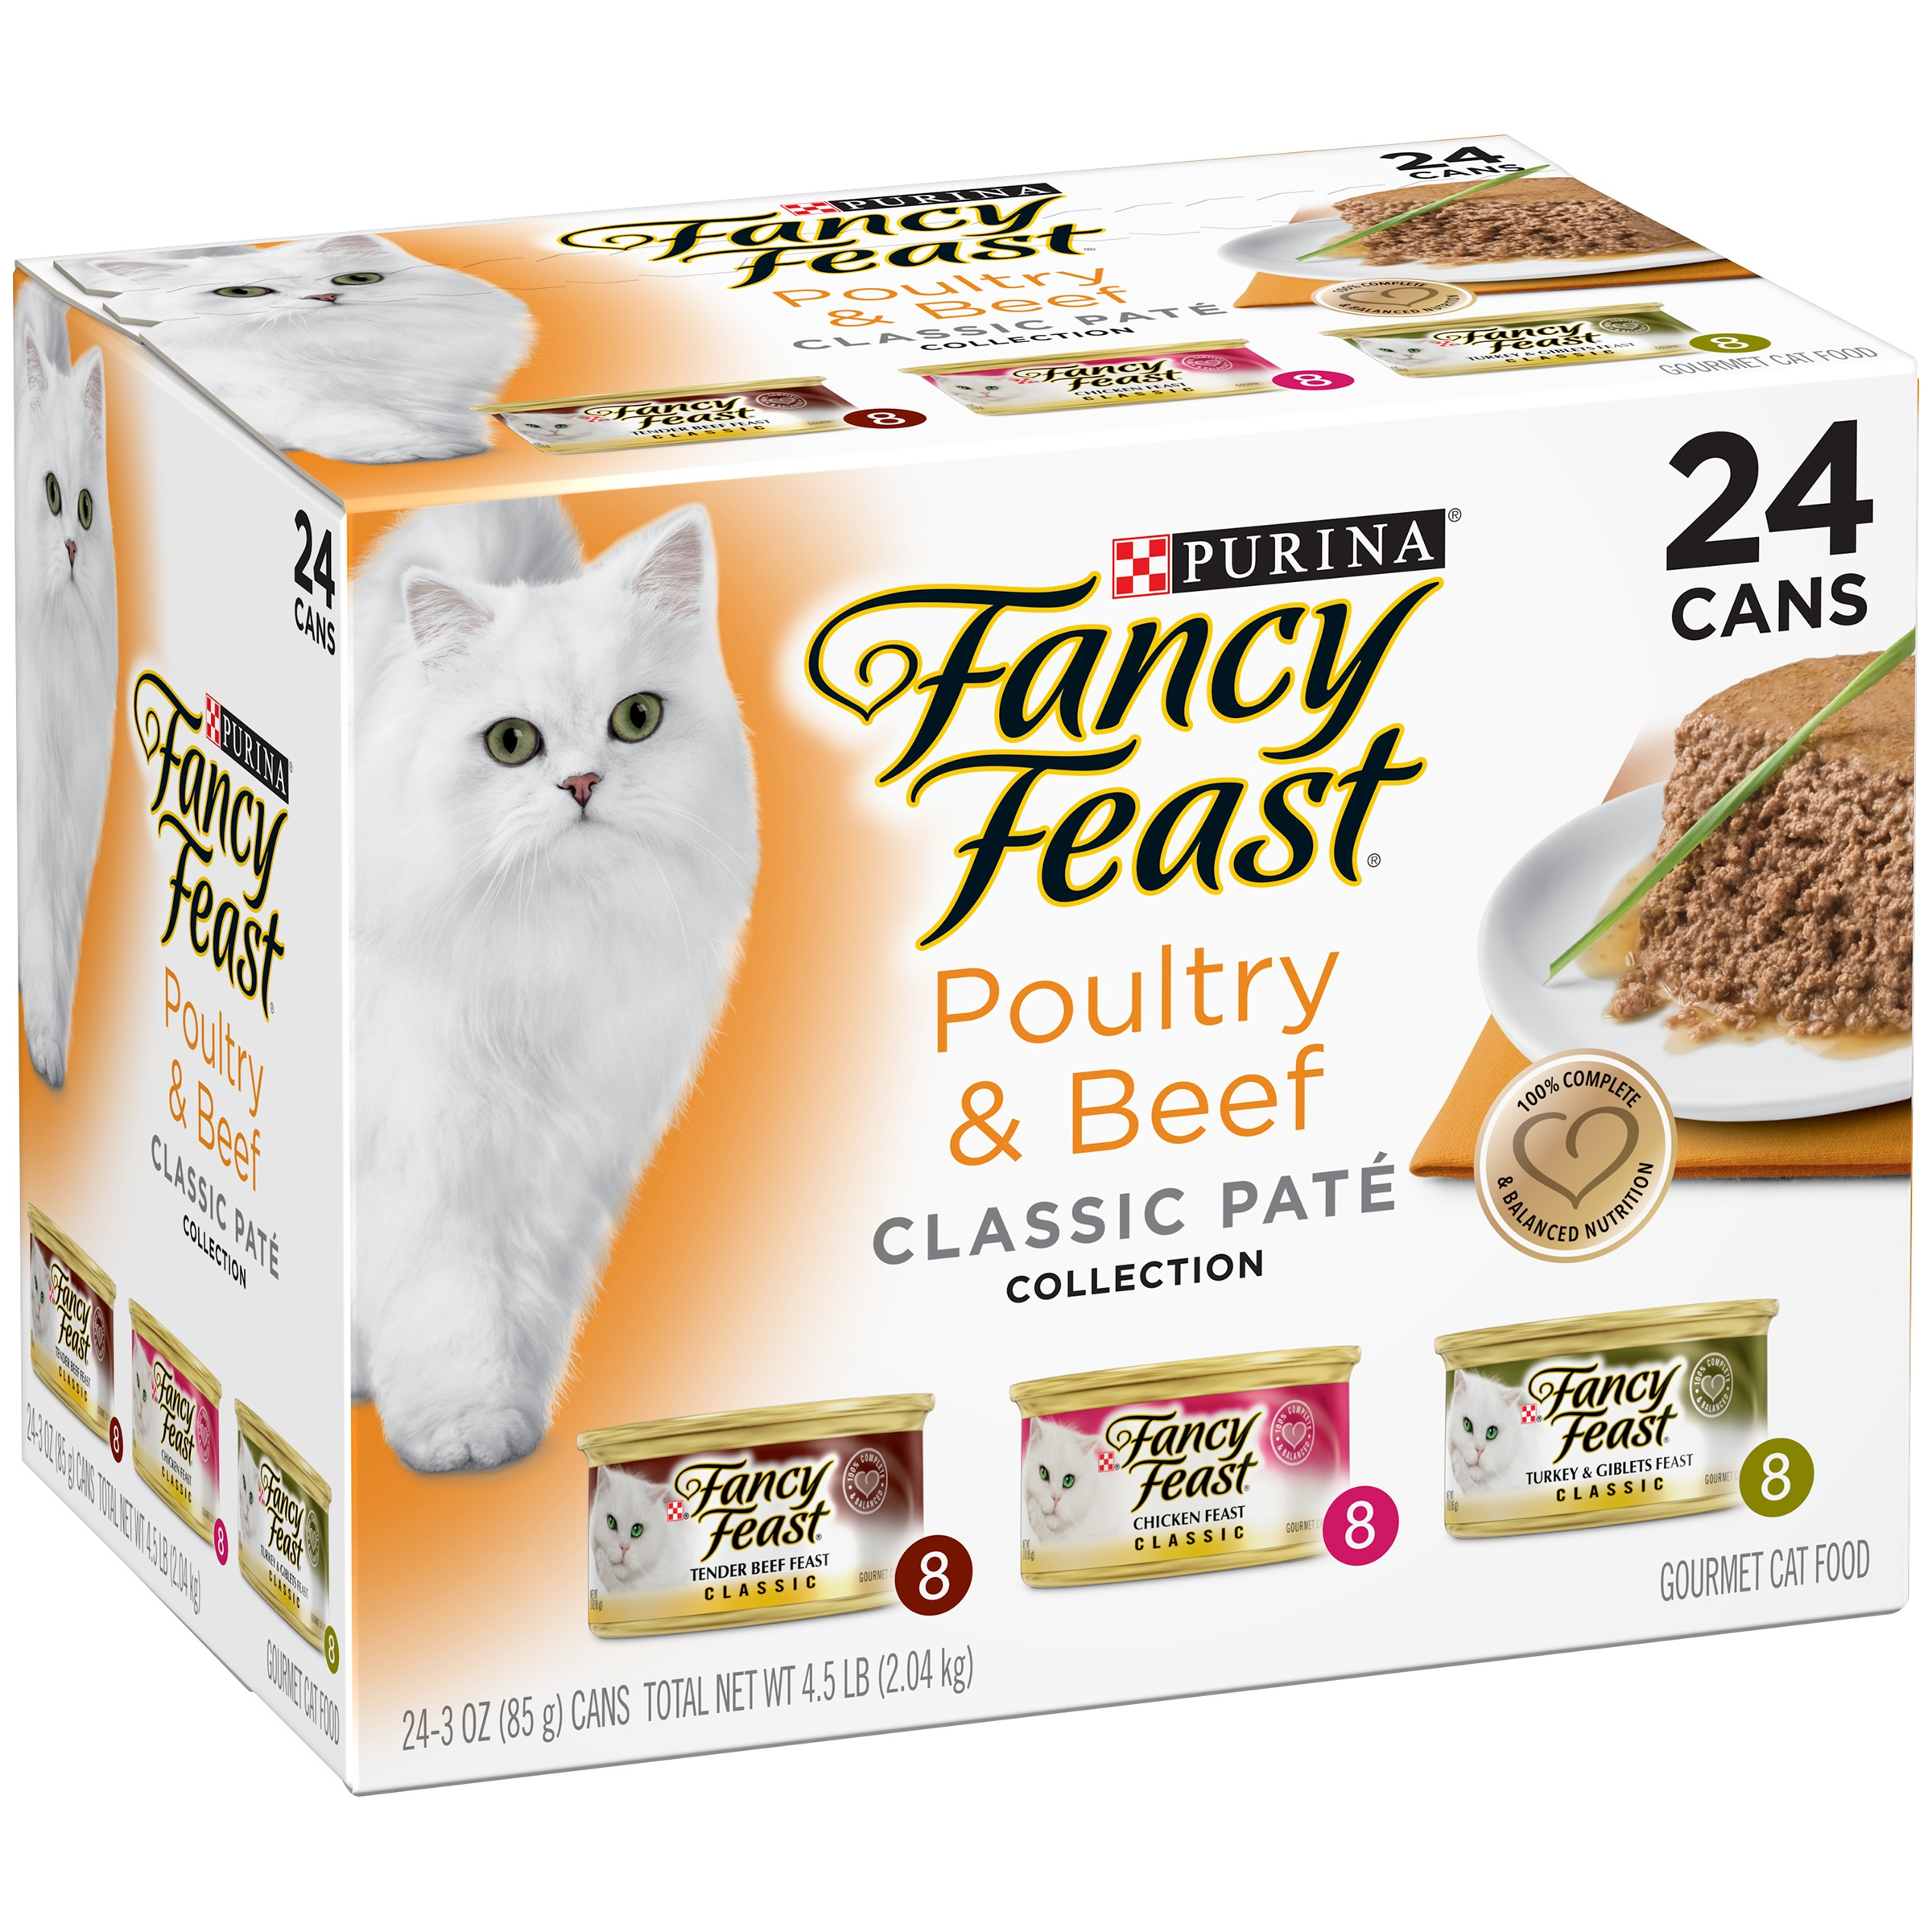 Purina Fancy Feast Classic Poultry & Beef Collection Cat Food 24-3 oz. Cans